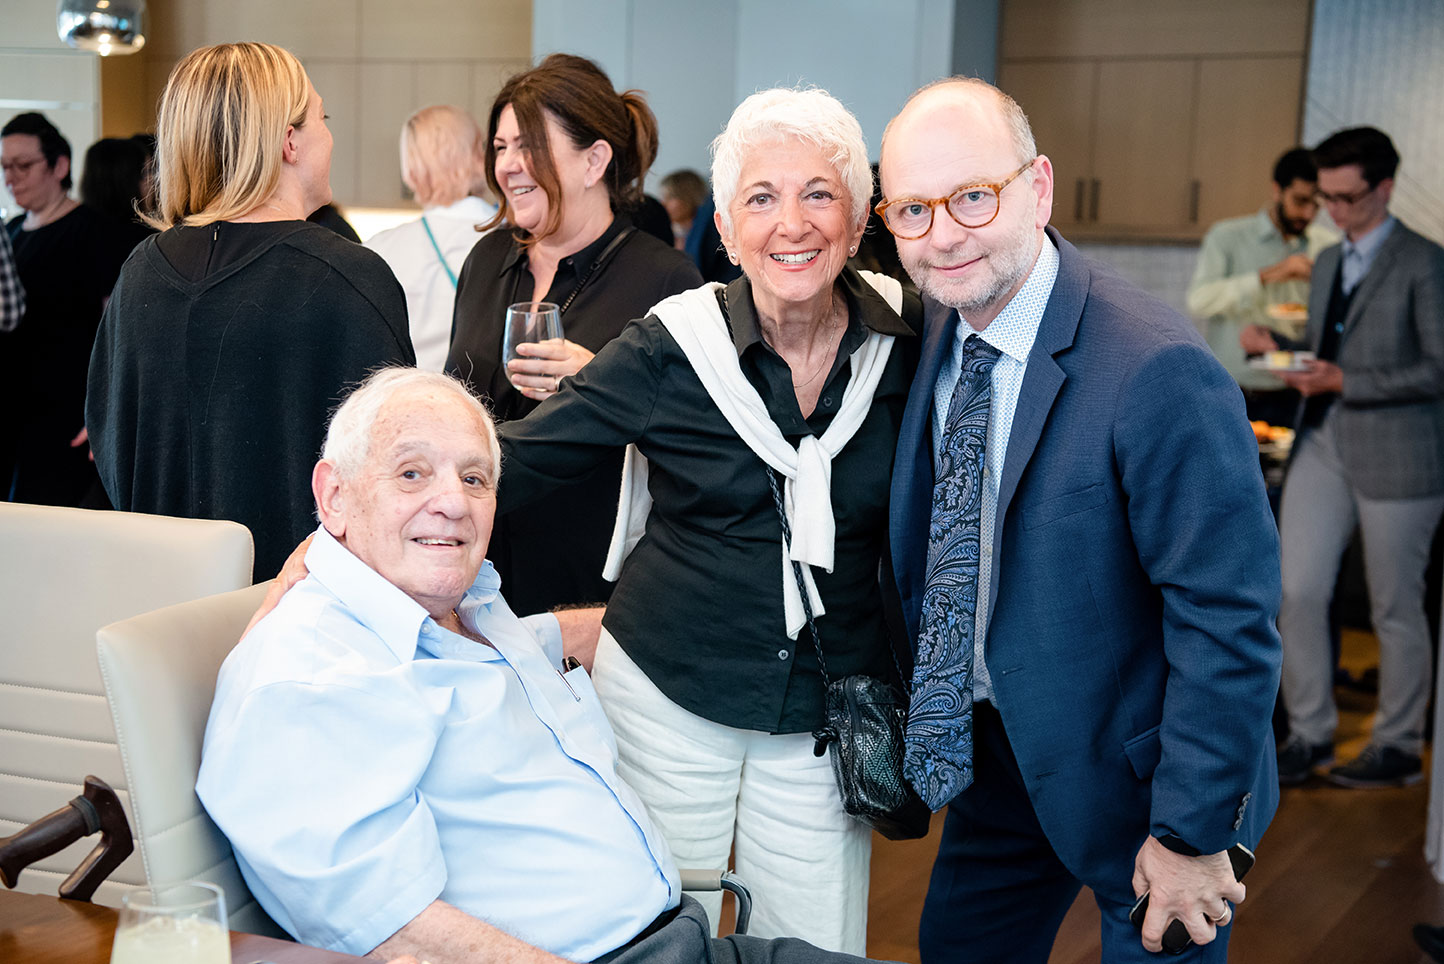 George Weiss (seated) with Daisy Miller and Finci-Viterbi Executive Director Stephen Smith